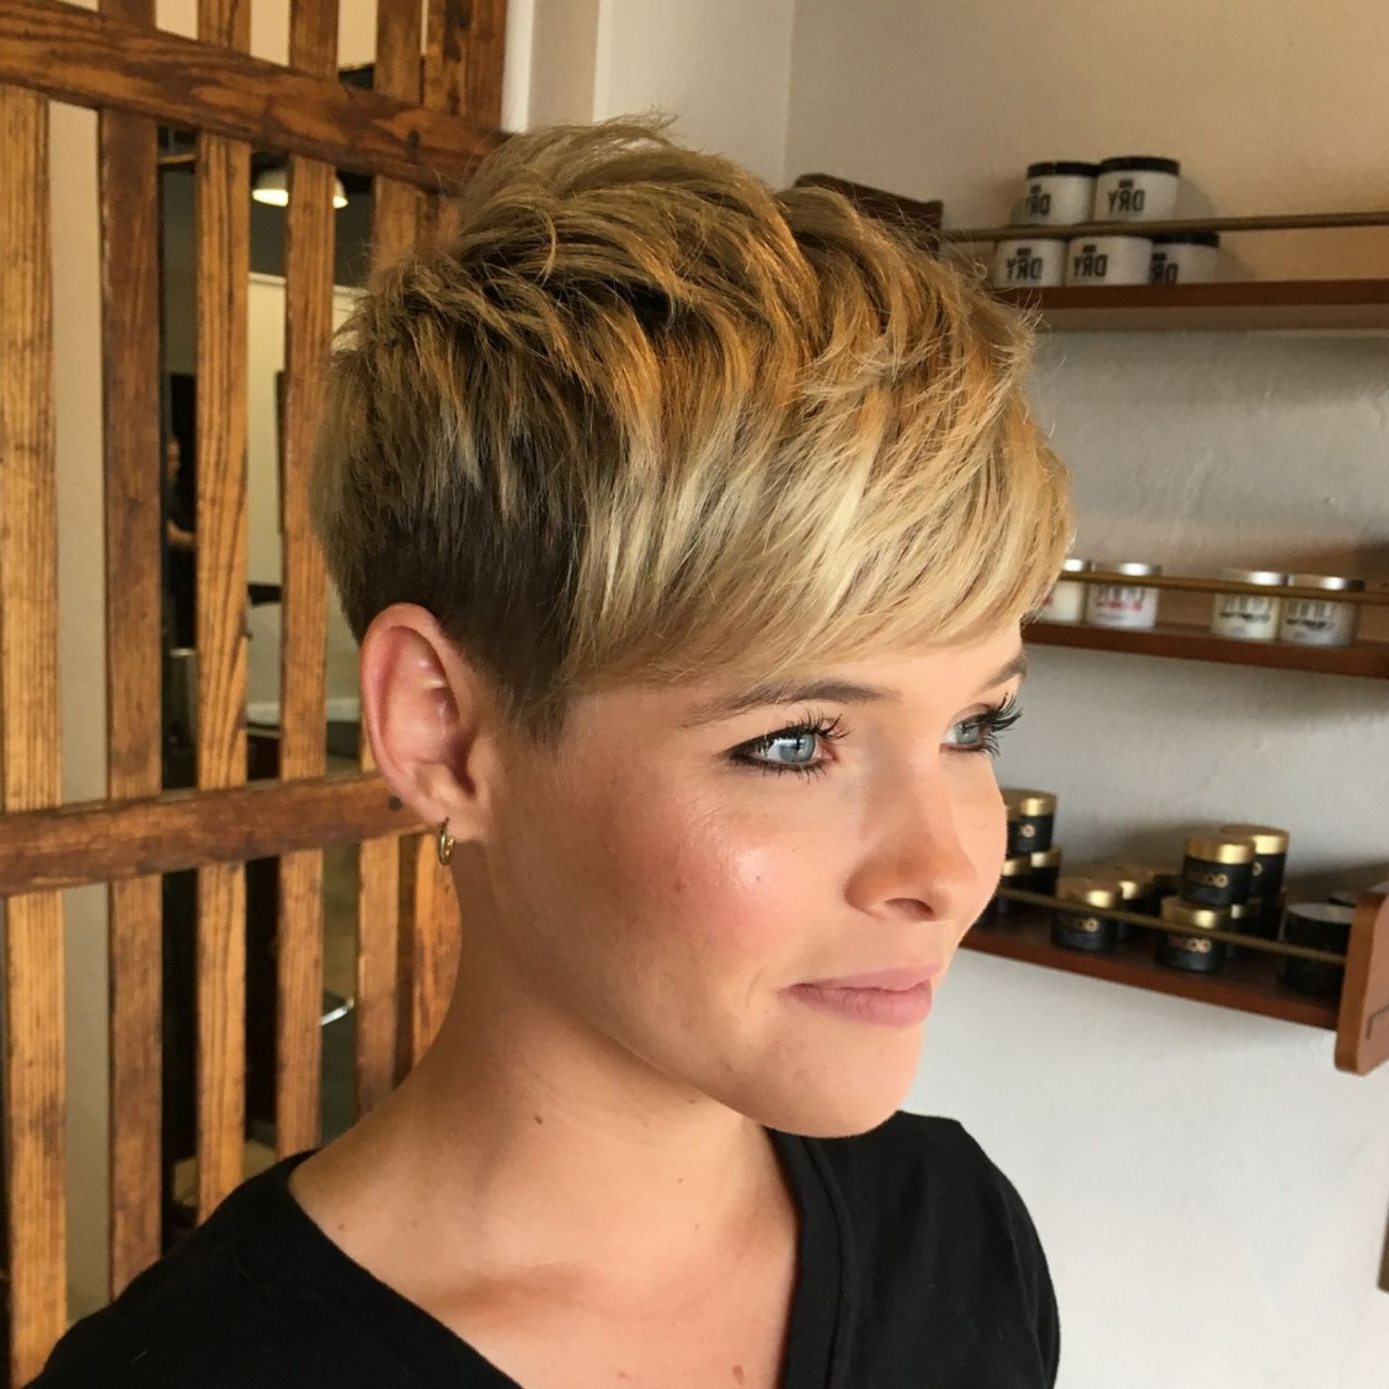 60 Short Shag Hairstyles That You Simply Can't Miss In 2018 Inside Tapered Gray Pixie Hairstyles With Textured Crown (View 12 of 20)